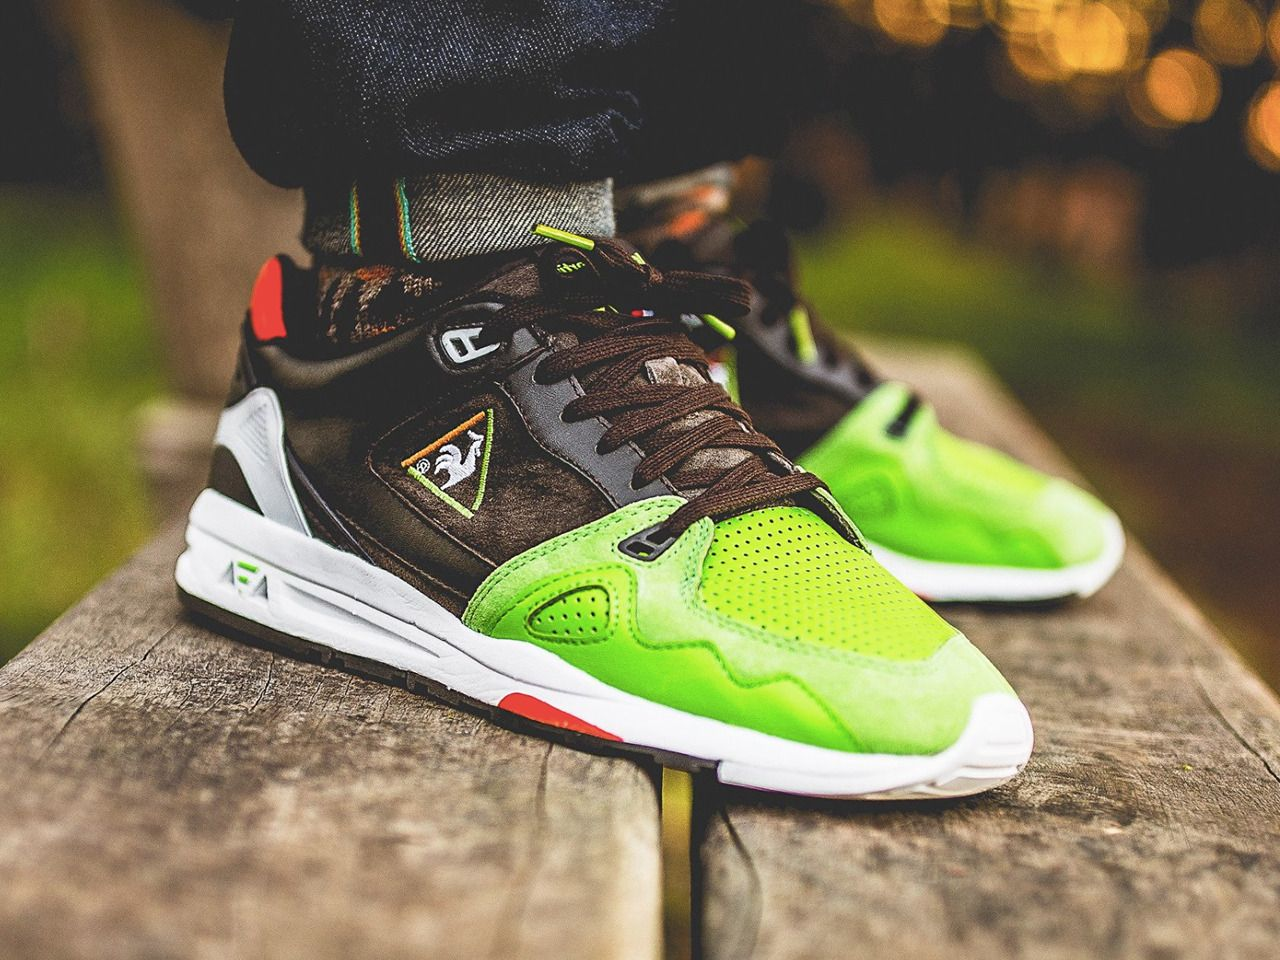 332f83d6cafb Le Coq Sportif R1000 Mother Nature (by  timmysmalls)